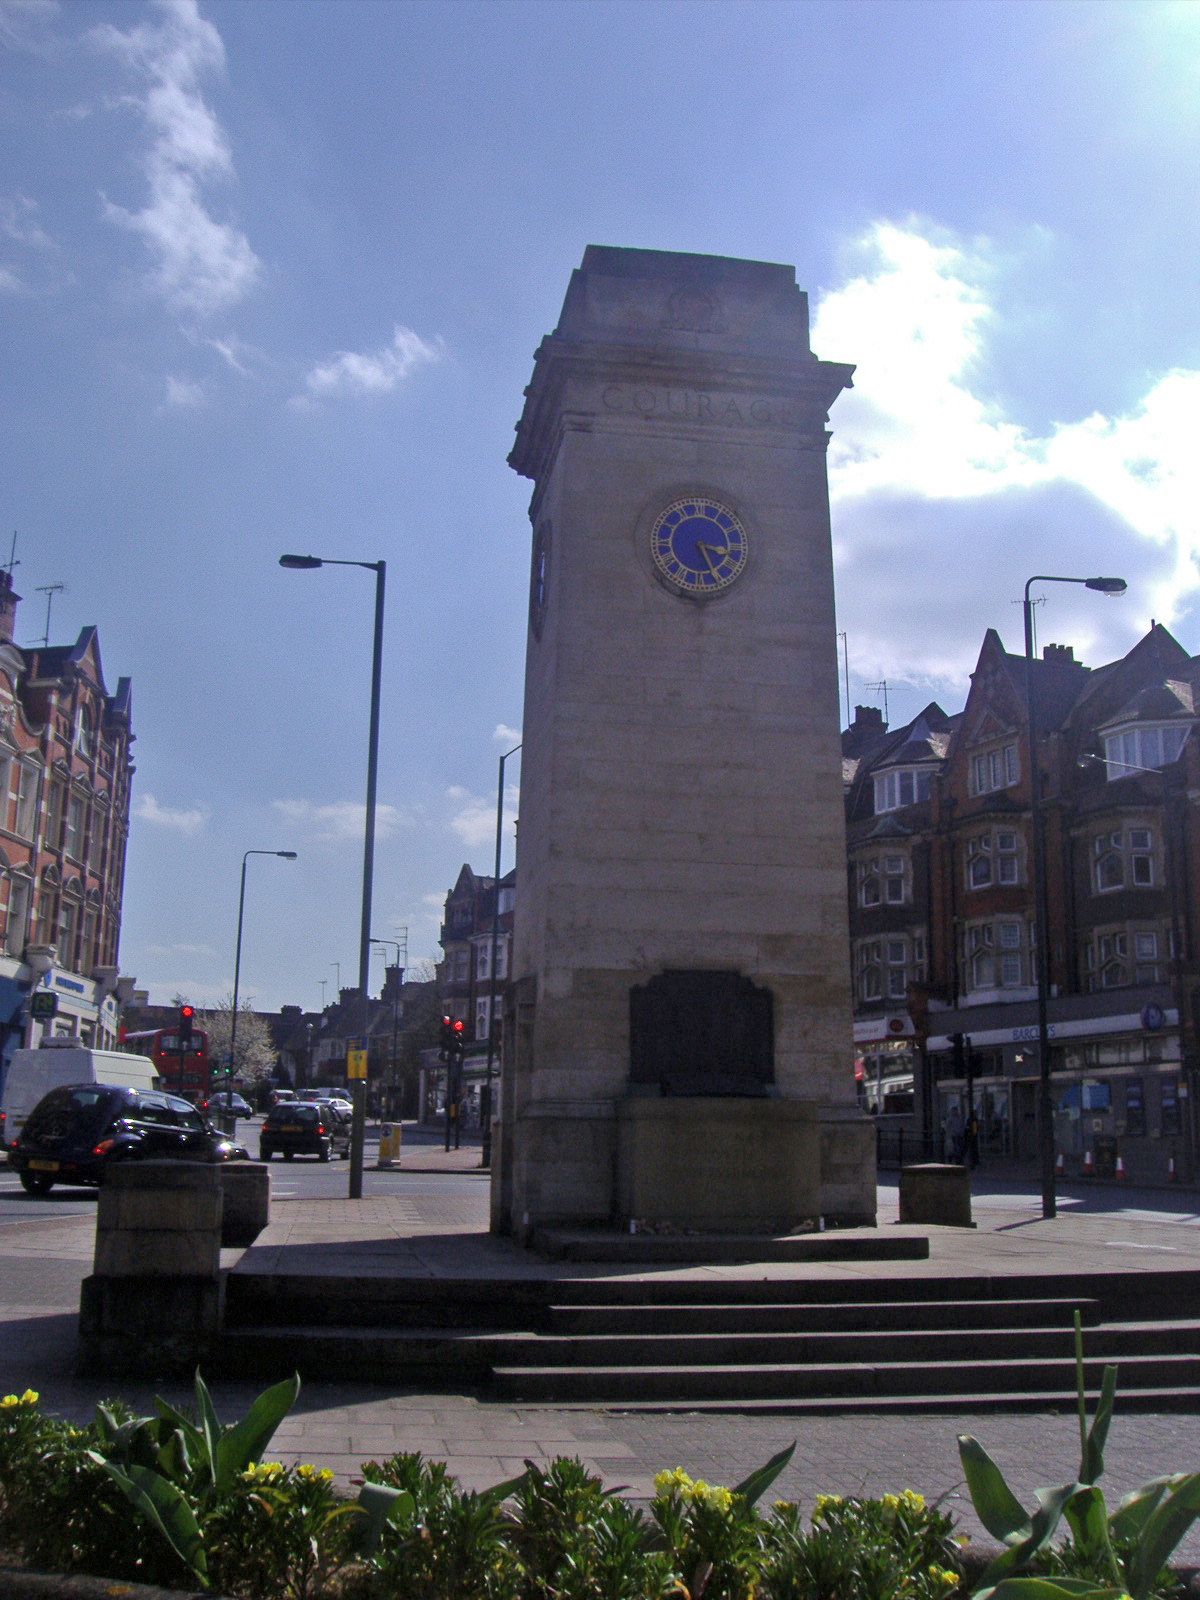 golders_green_clock_tower_hd